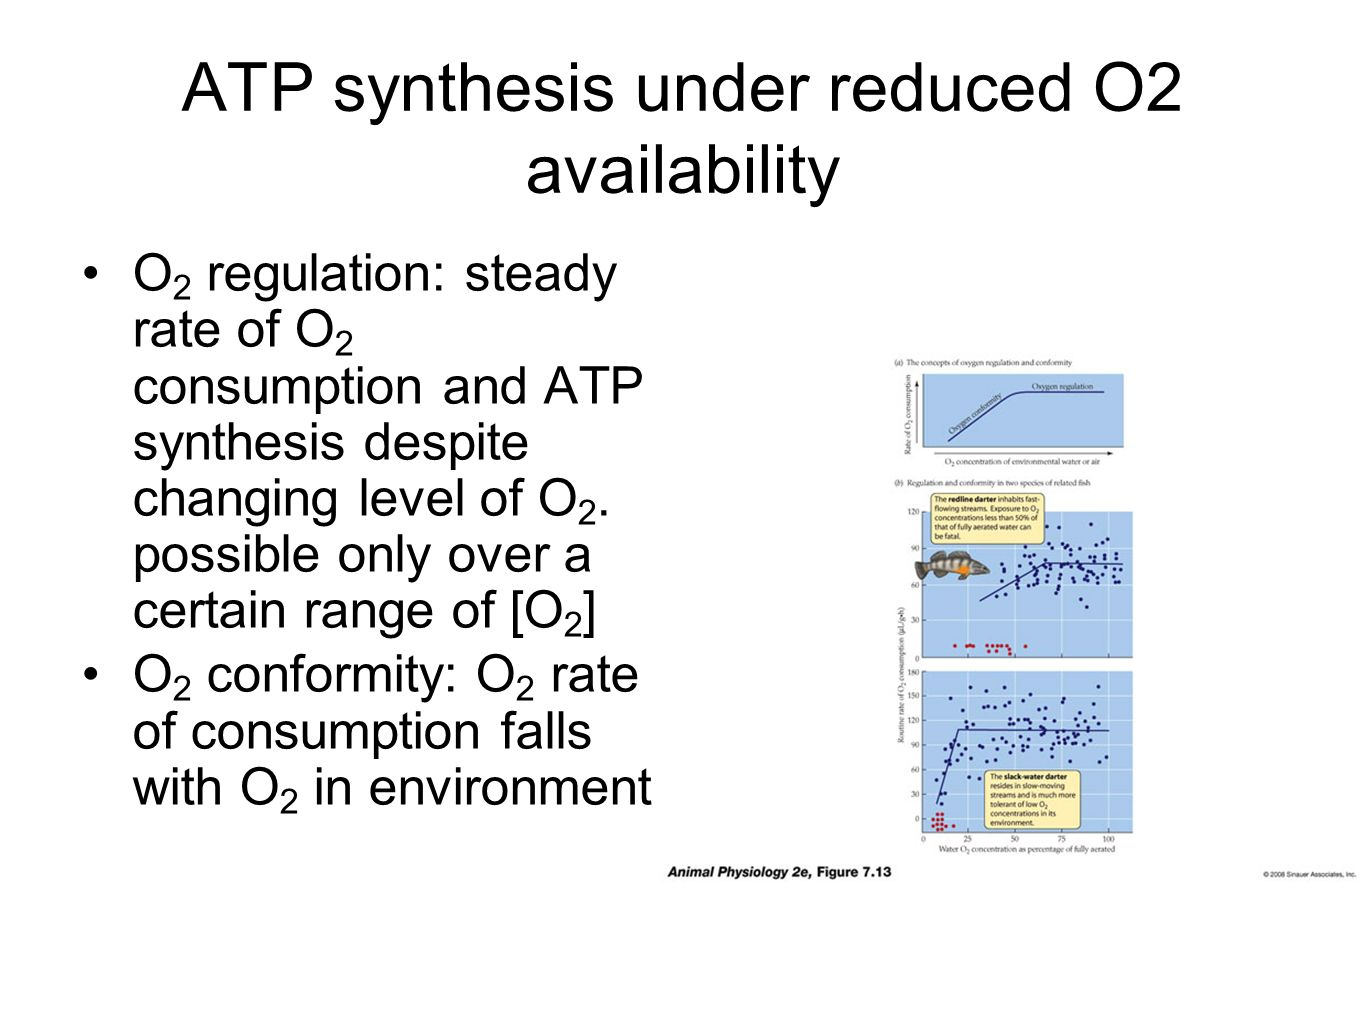 ATP synthesis under reduced O2 availability O 2 regulation: steady rate of O 2 consumption and ATP synthesis despite changing level of O 2.